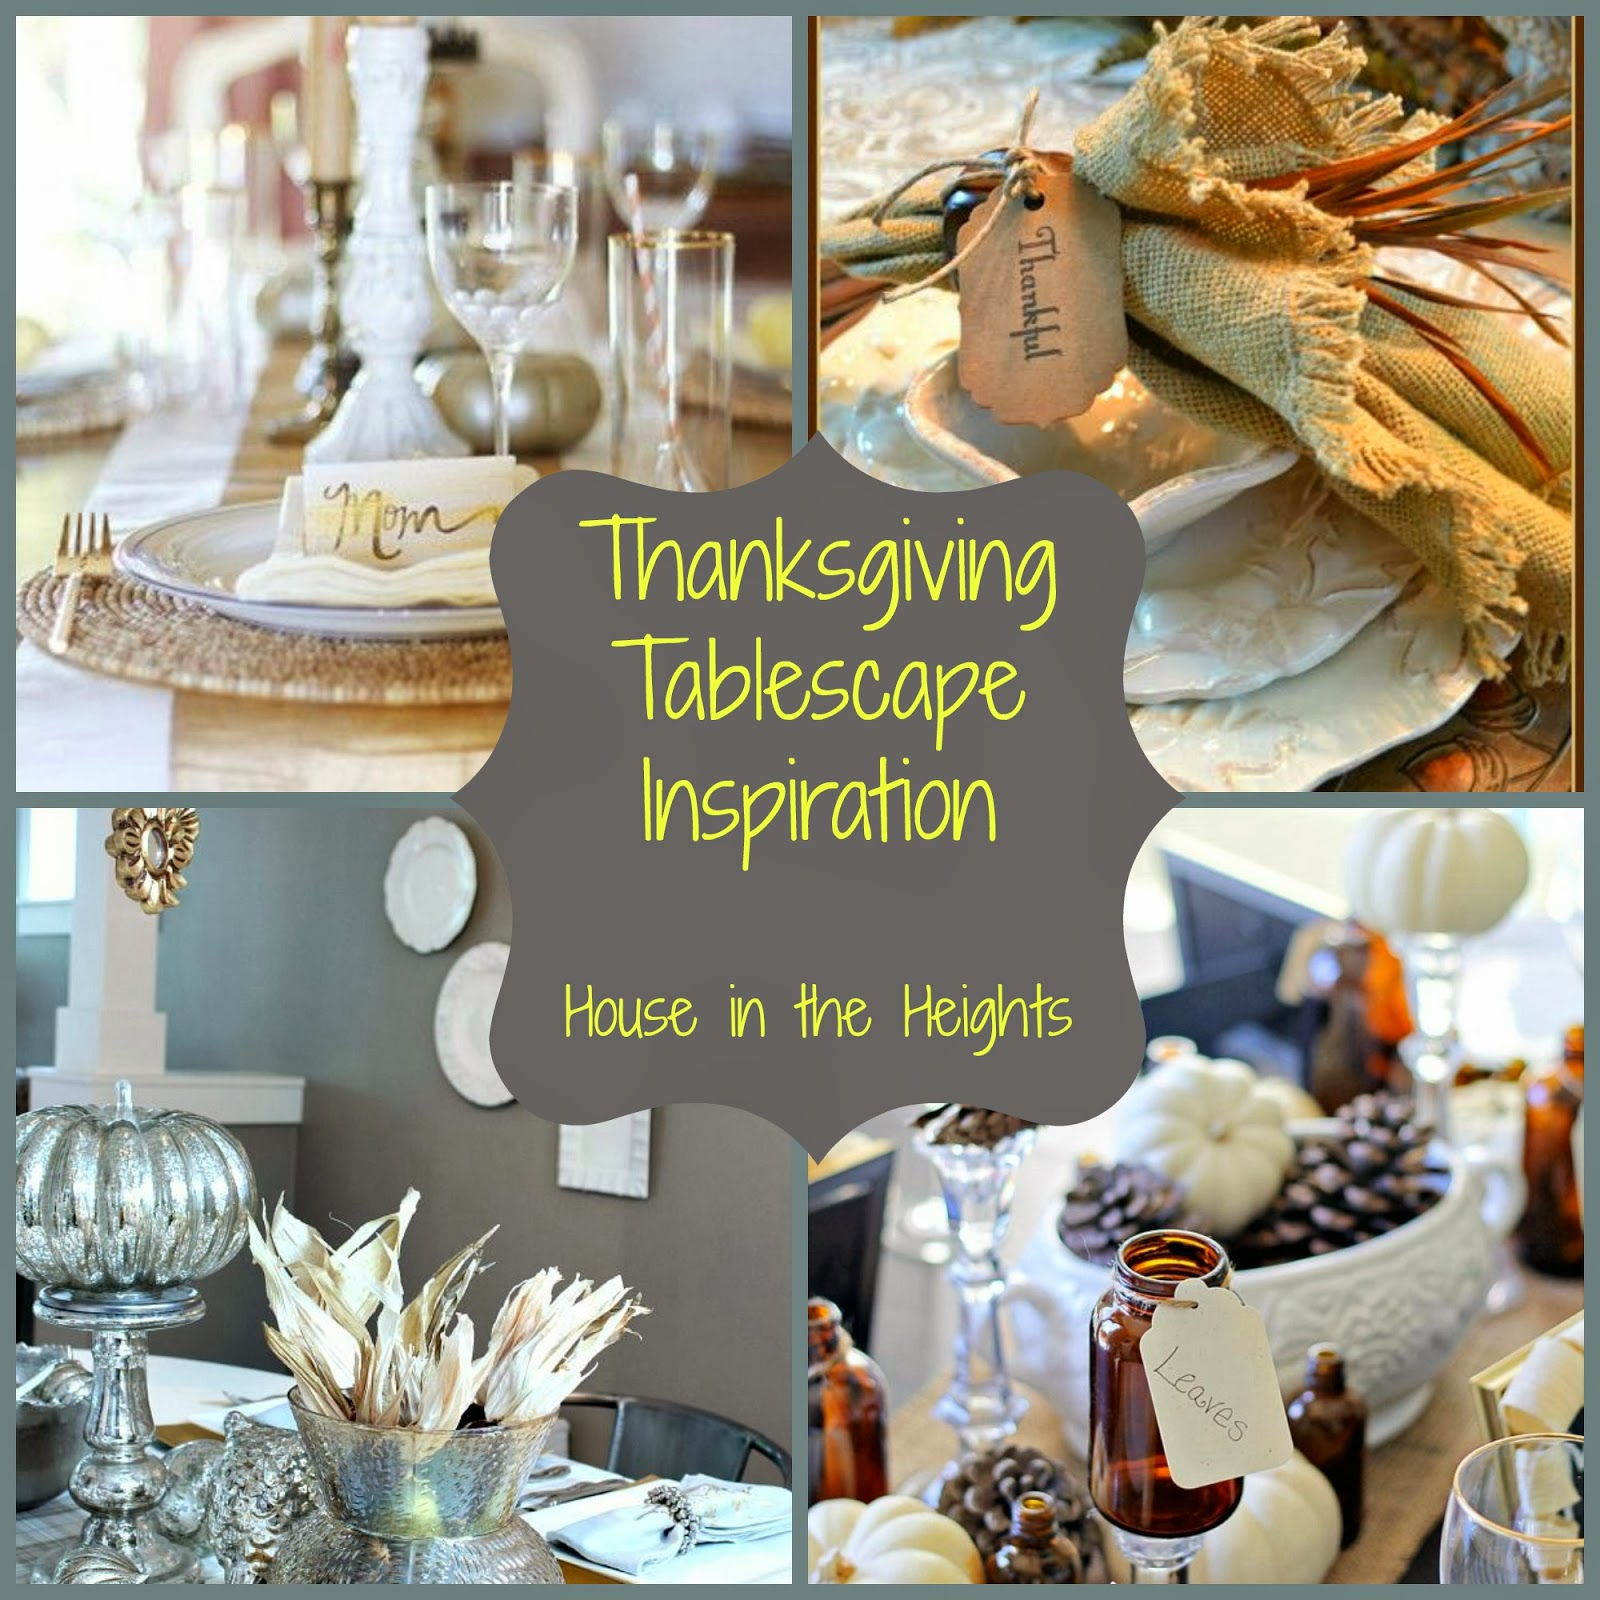 Thanksgiving Table Settings Pinterest: House In The Heights: Thanksgiving Tablescape Inspiration